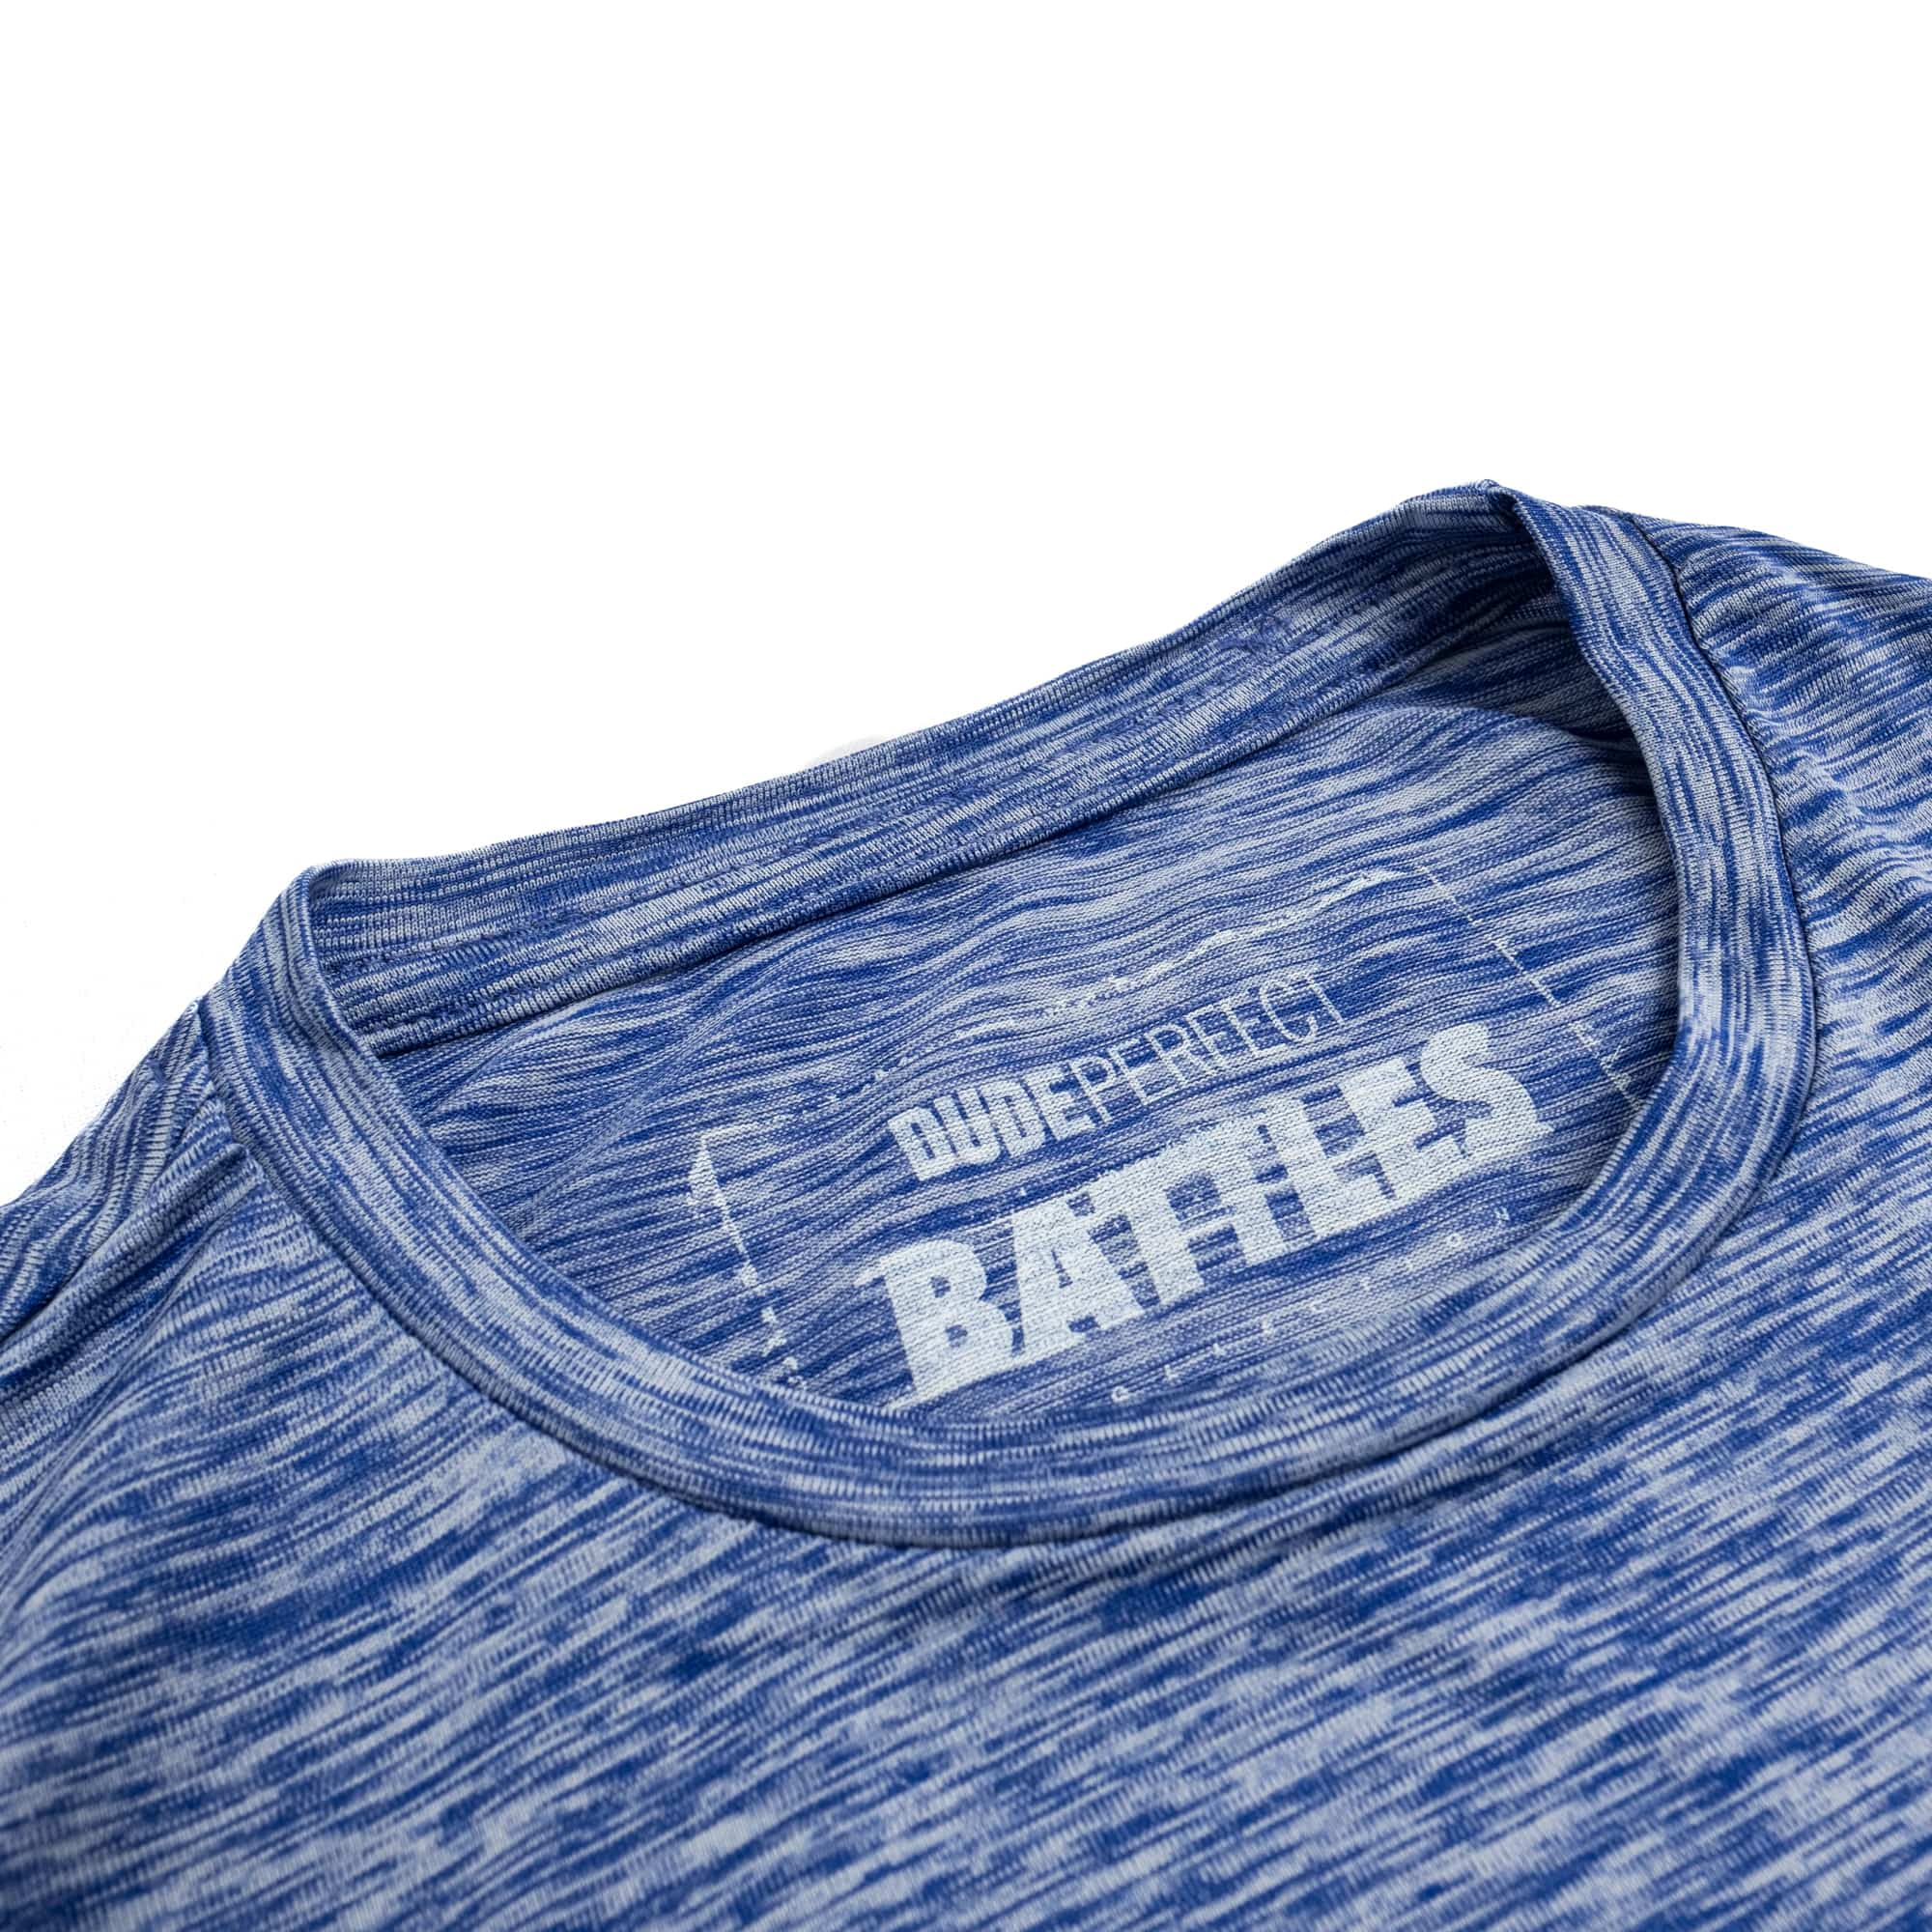 Youth Wordmark Battles Performance Tee